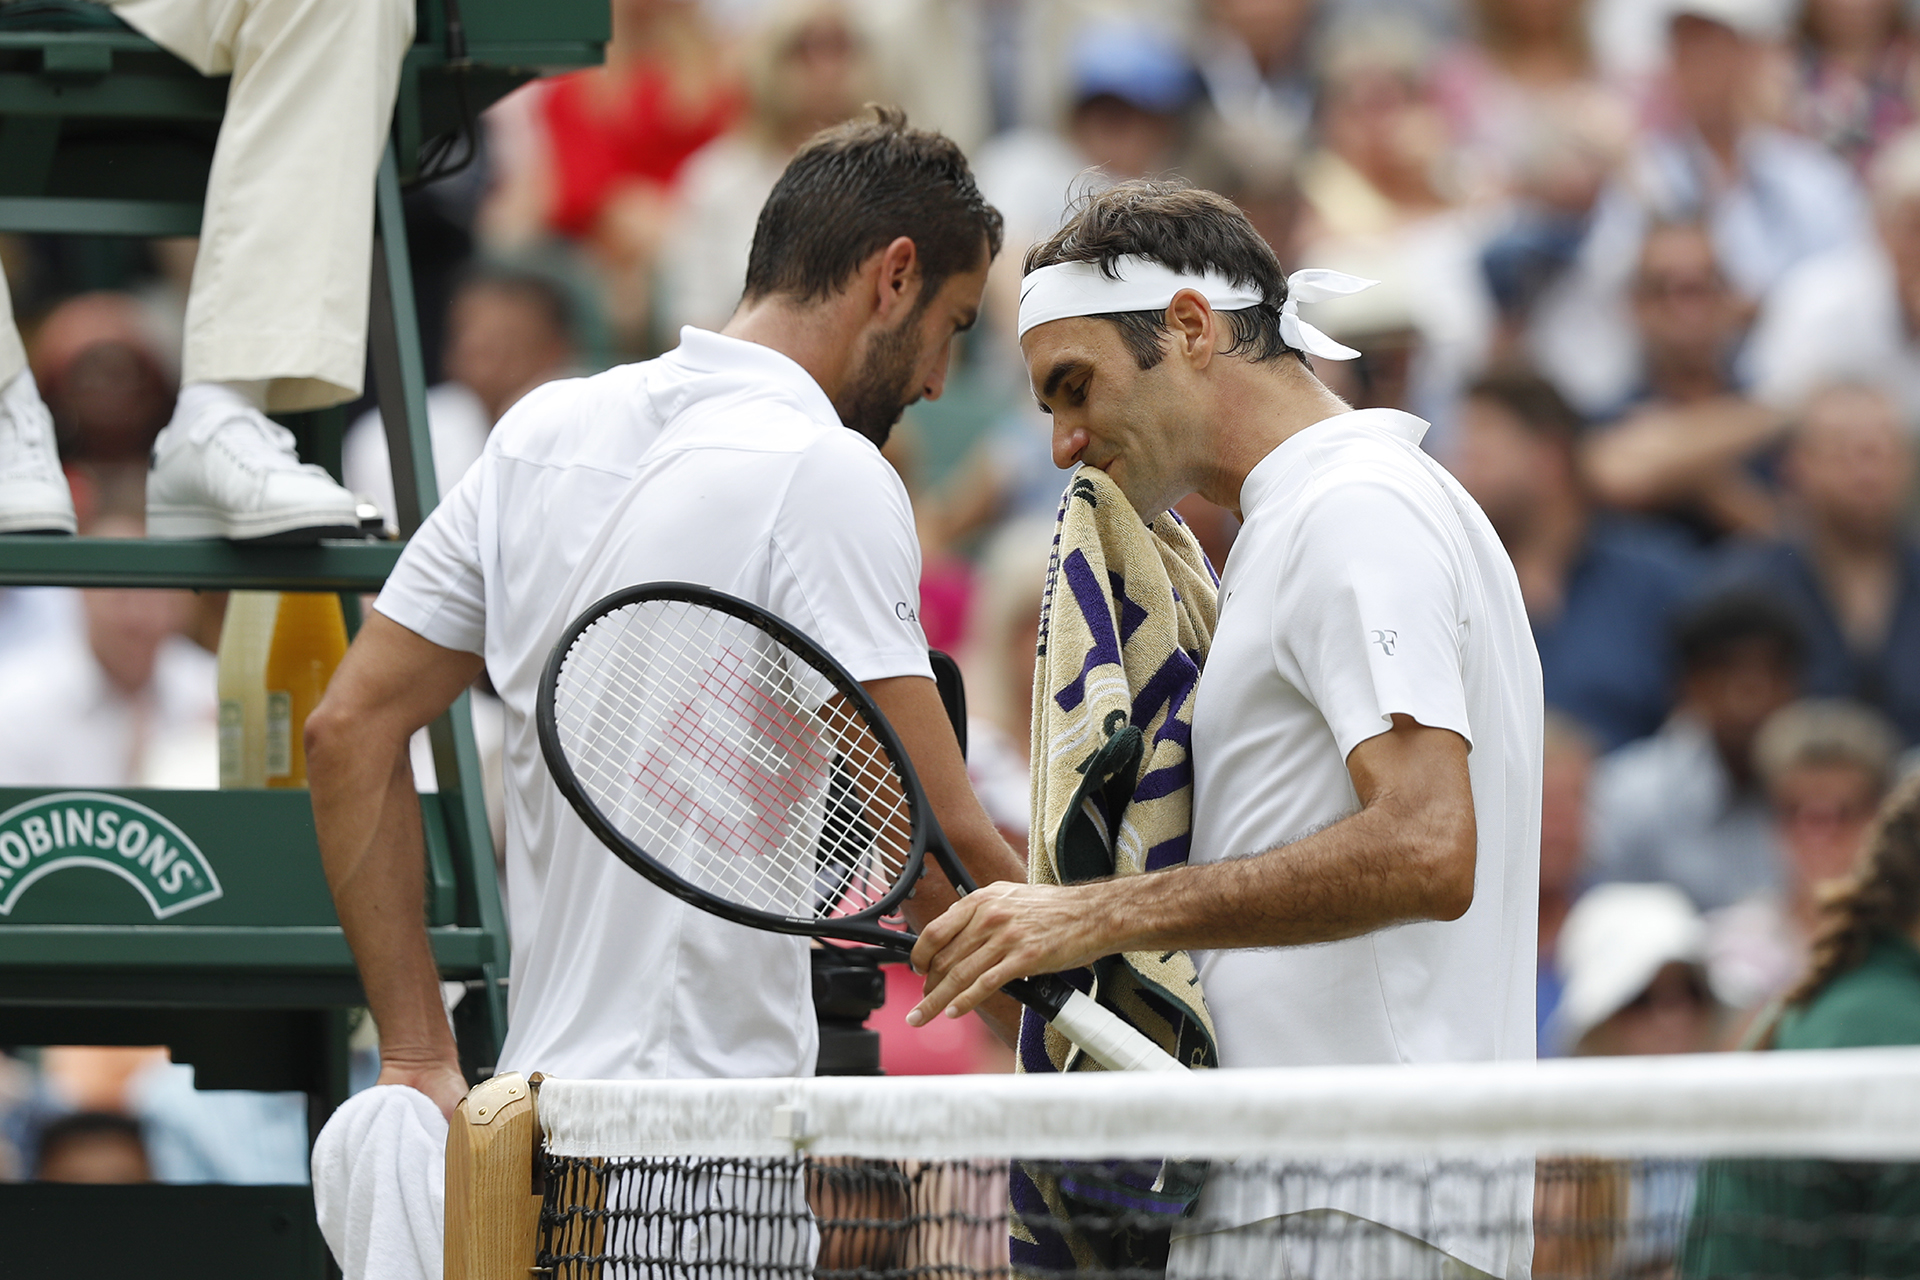 Switzerland's Roger Federer (R) passes Croatia's Marin Cilic as they swap ends during their men's singles final match on the last day of the 2017 Wimbledon Championships at The All England Lawn Tennis Club in Wimbledon, southwest London, on July 16, 2017. / AFP PHOTO / Adrian DENNIS / RESTRICTED TO EDITORIAL USE